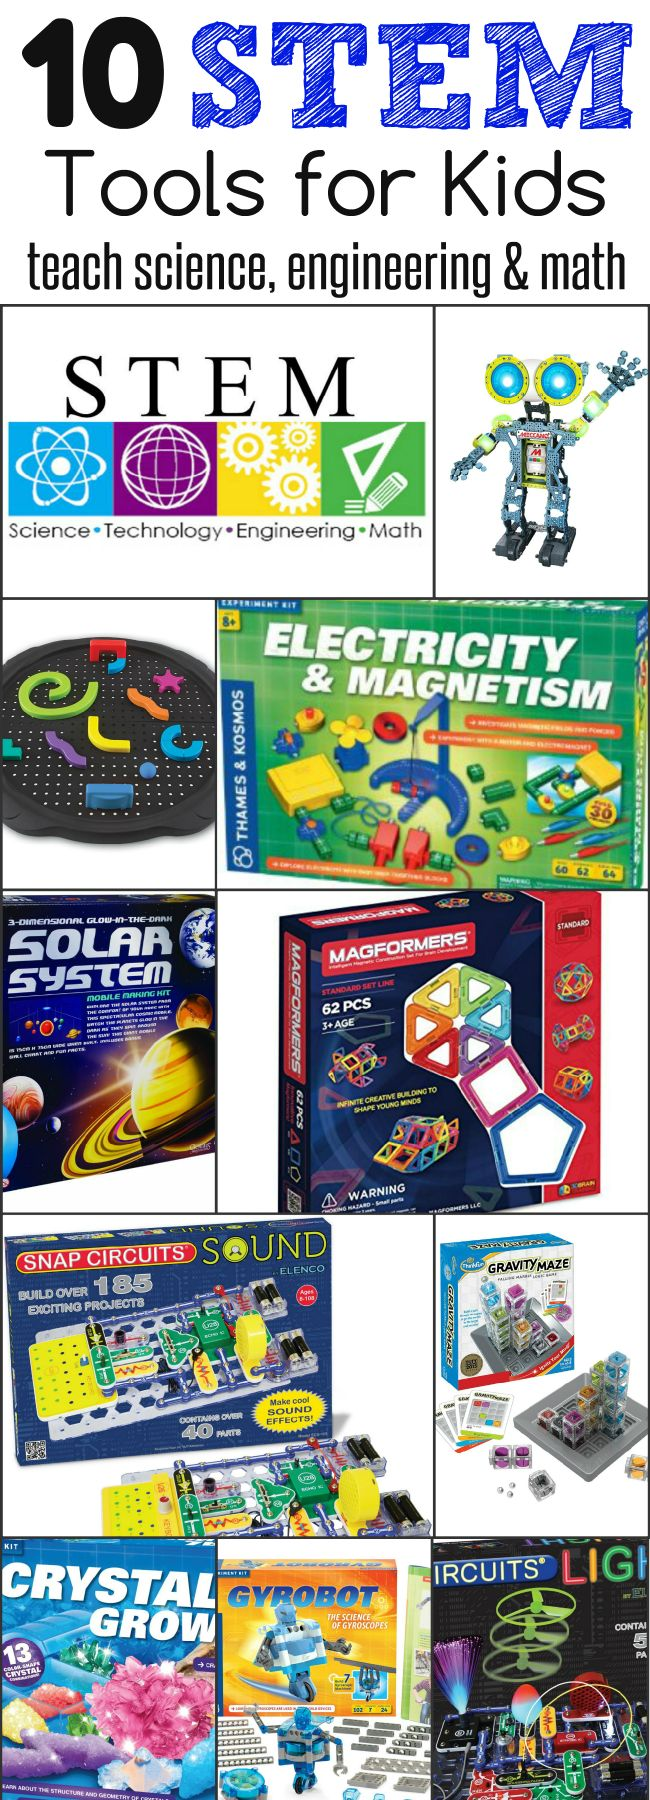 Awesome list - Want to teach kids about science, technology, engineering and math? You'll love this list of 10 STEM Tools for kids!